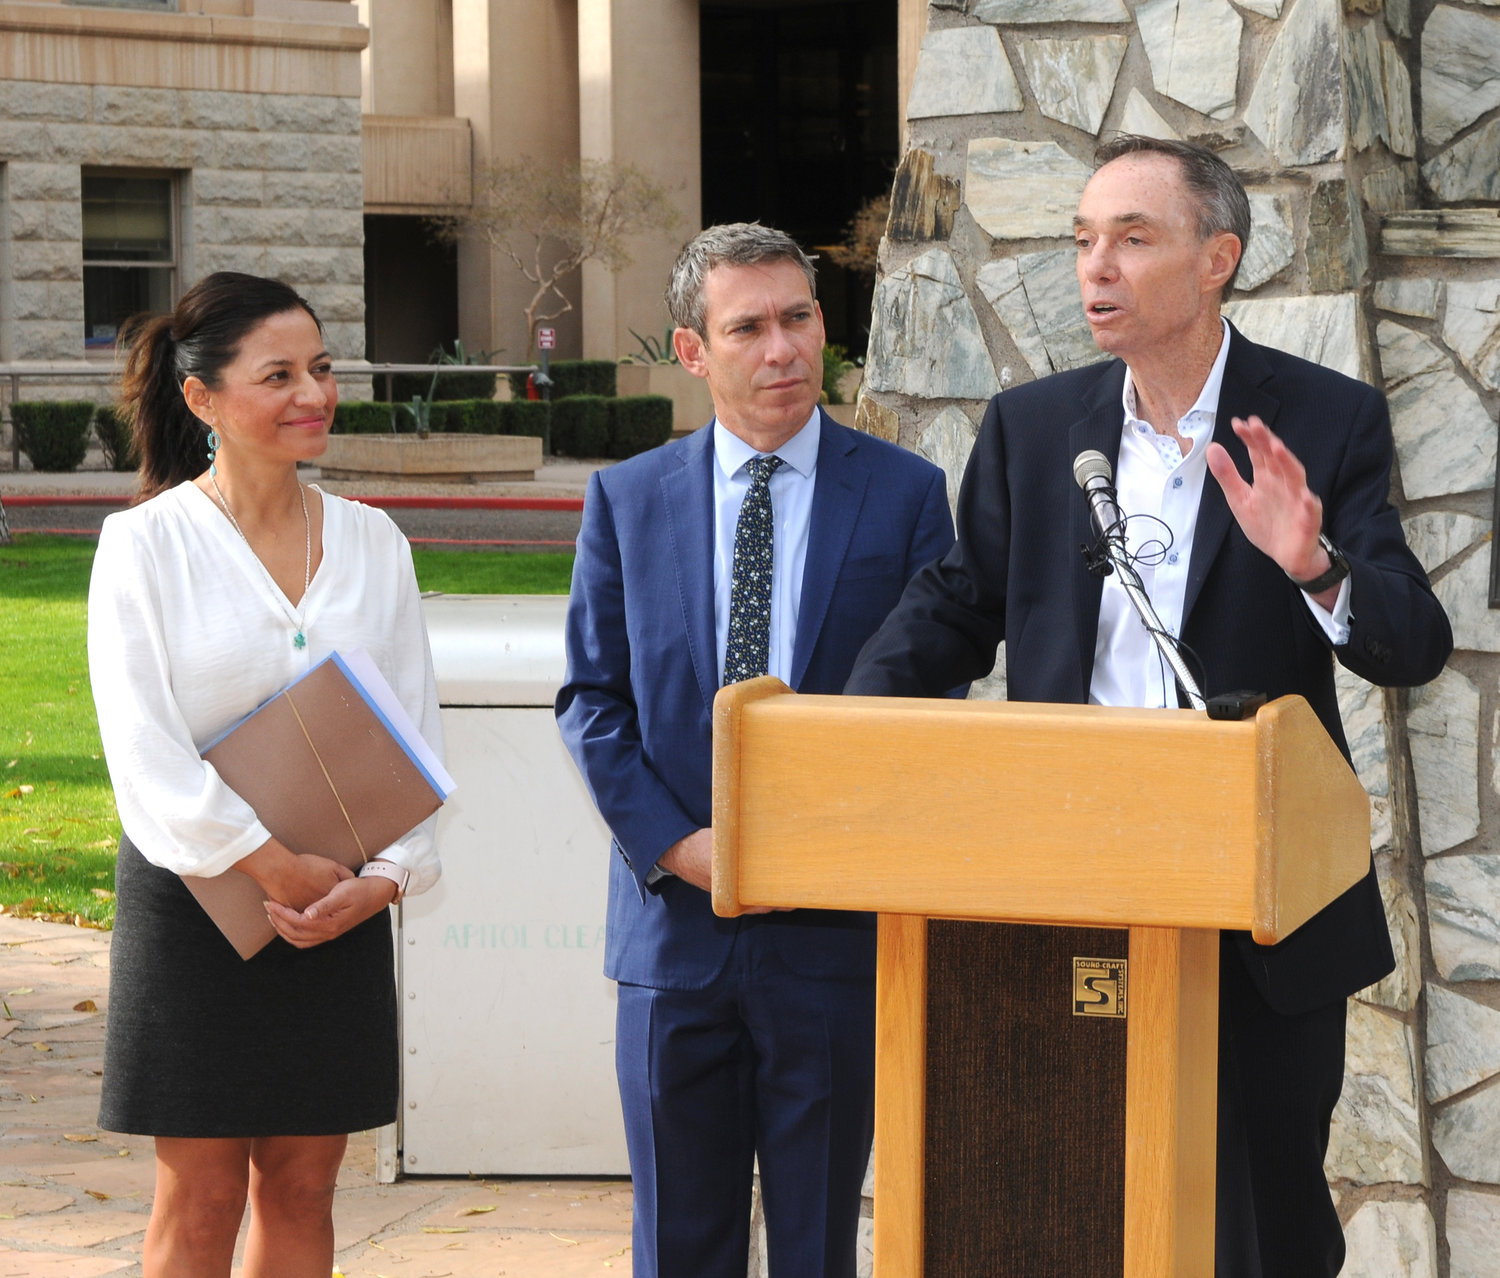 Arizona Realtor Greg Hague, at far right, is an expert voice on all things Arizona real estate. Here he leads a recent press conference with Arizona Reps. Isela Blanc and Aaron Lieberman at the Arizona capitol.